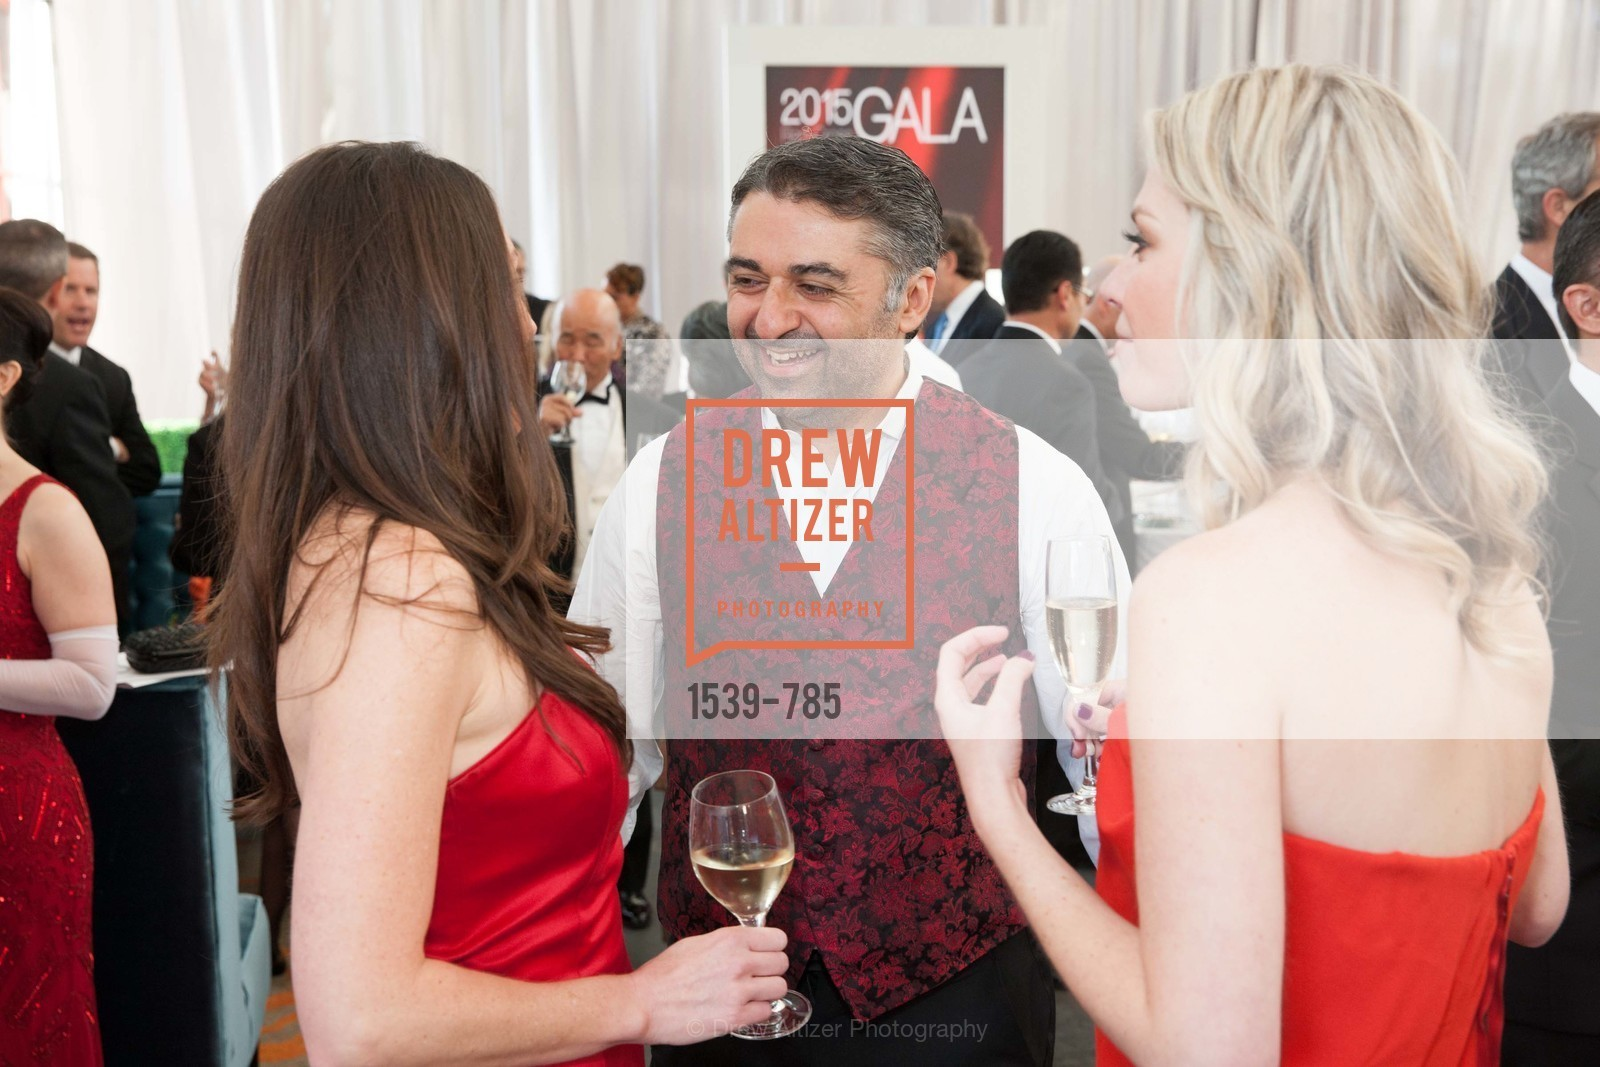 Hooman Khalili, 2015 RED CROSS Gala, US, April 12th, 2015,Drew Altizer, Drew Altizer Photography, full-service agency, private events, San Francisco photographer, photographer california